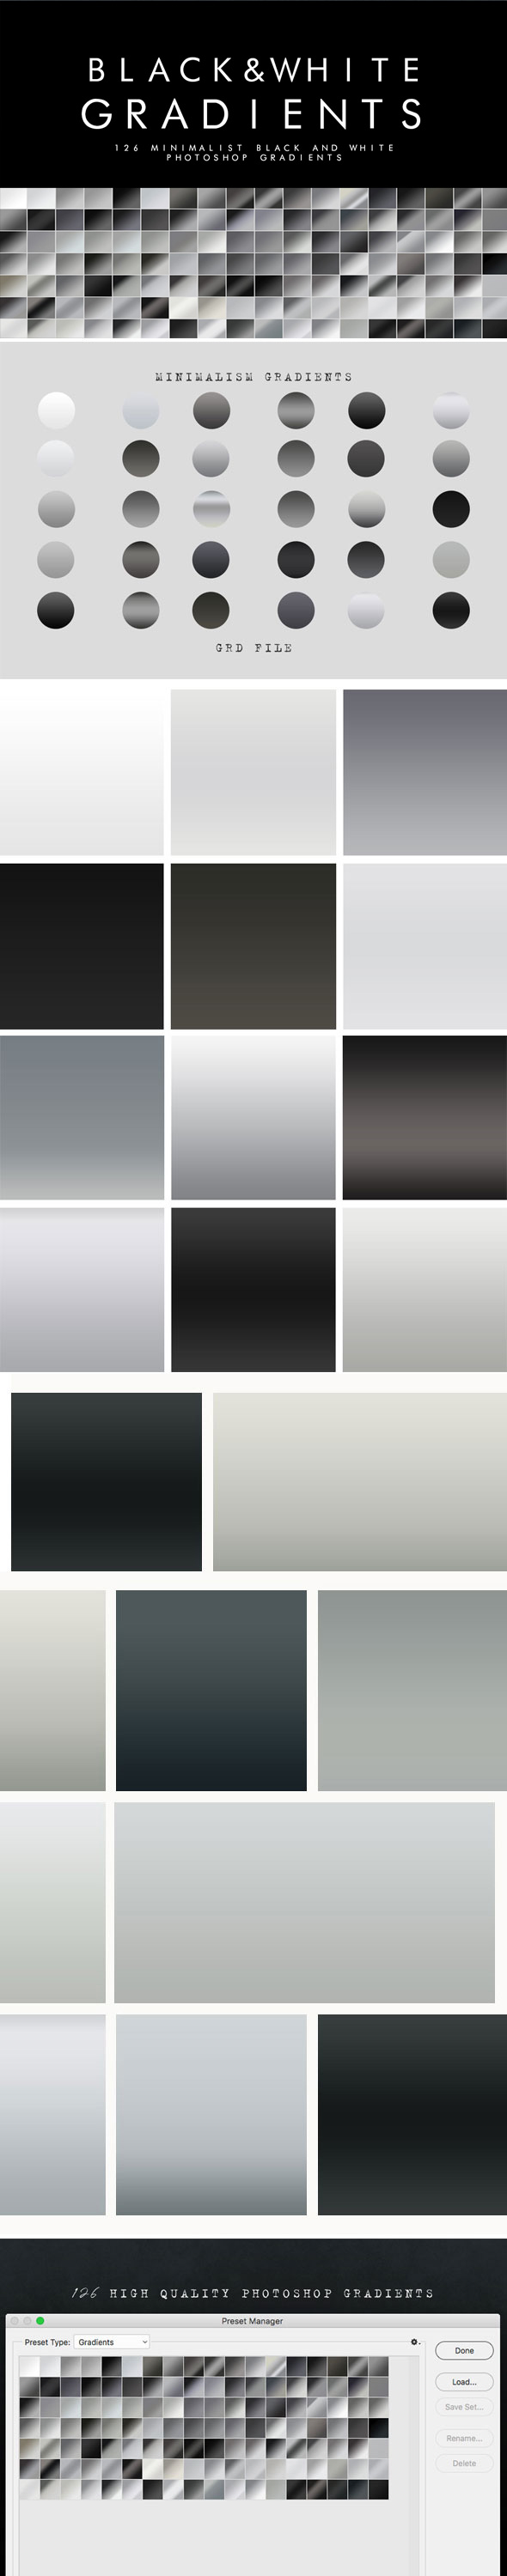 126 Black and White Gradients - Photoshop Add-ons